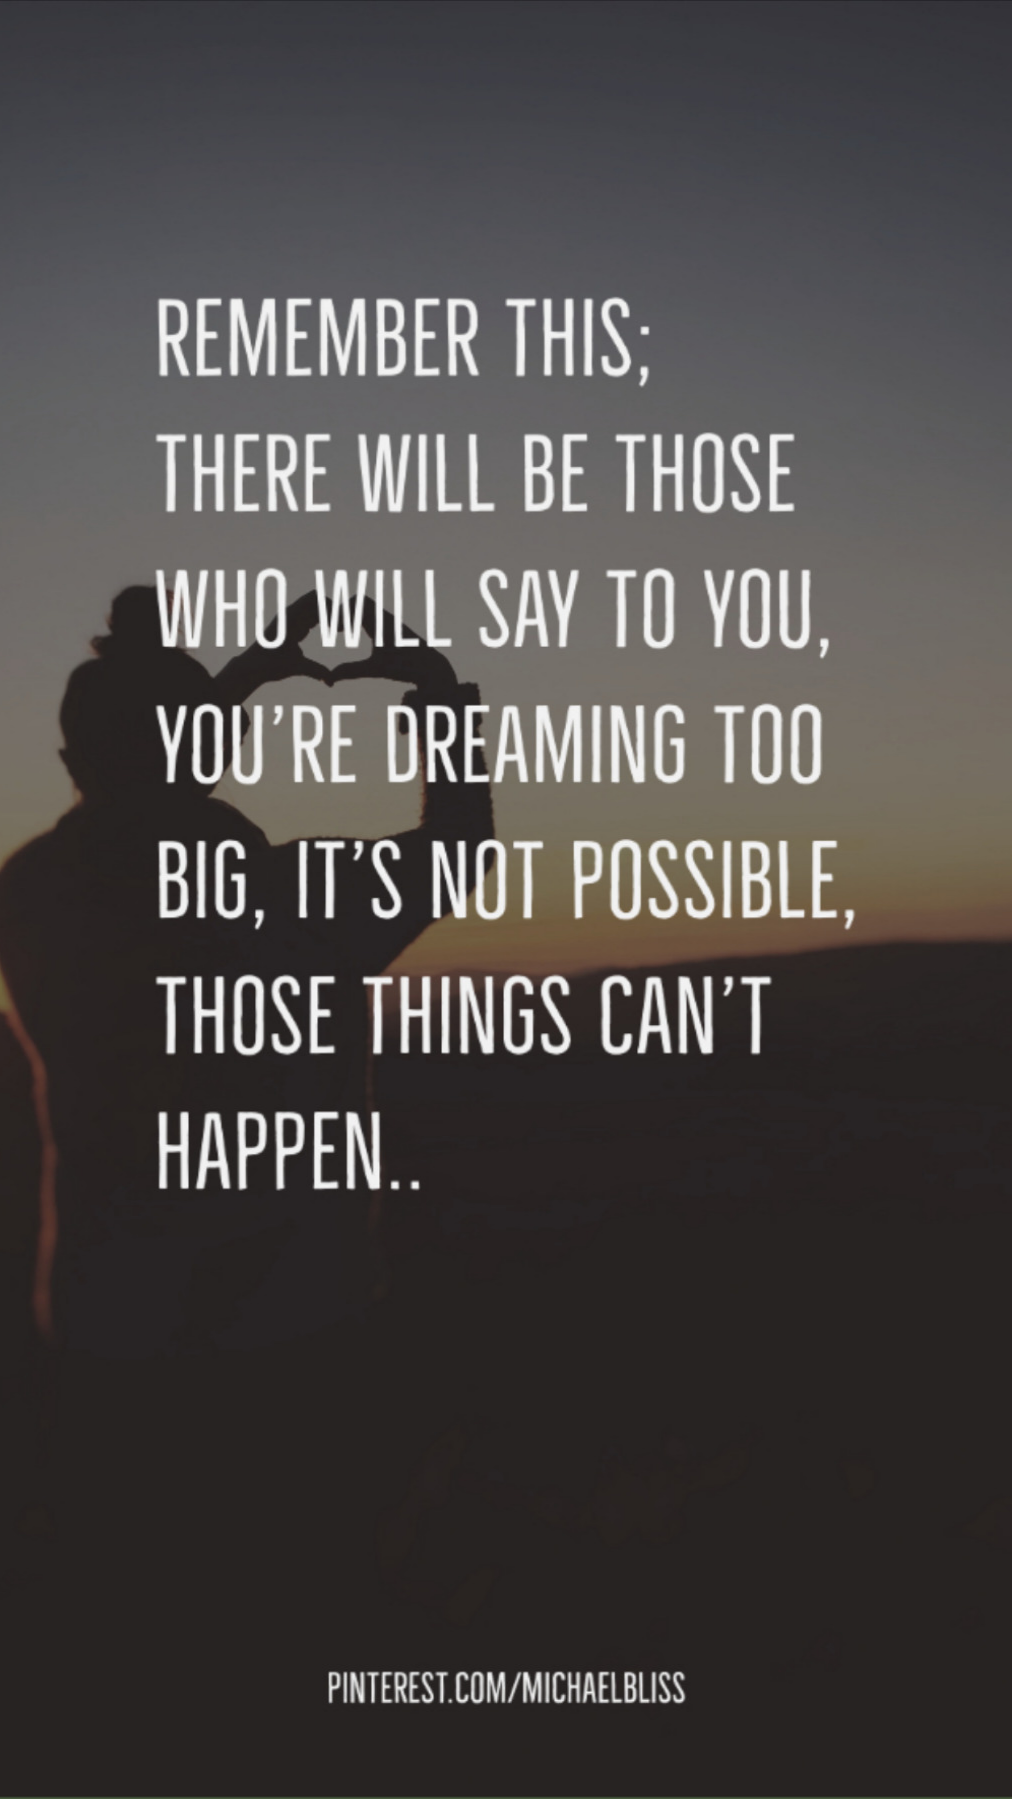 It is possible..